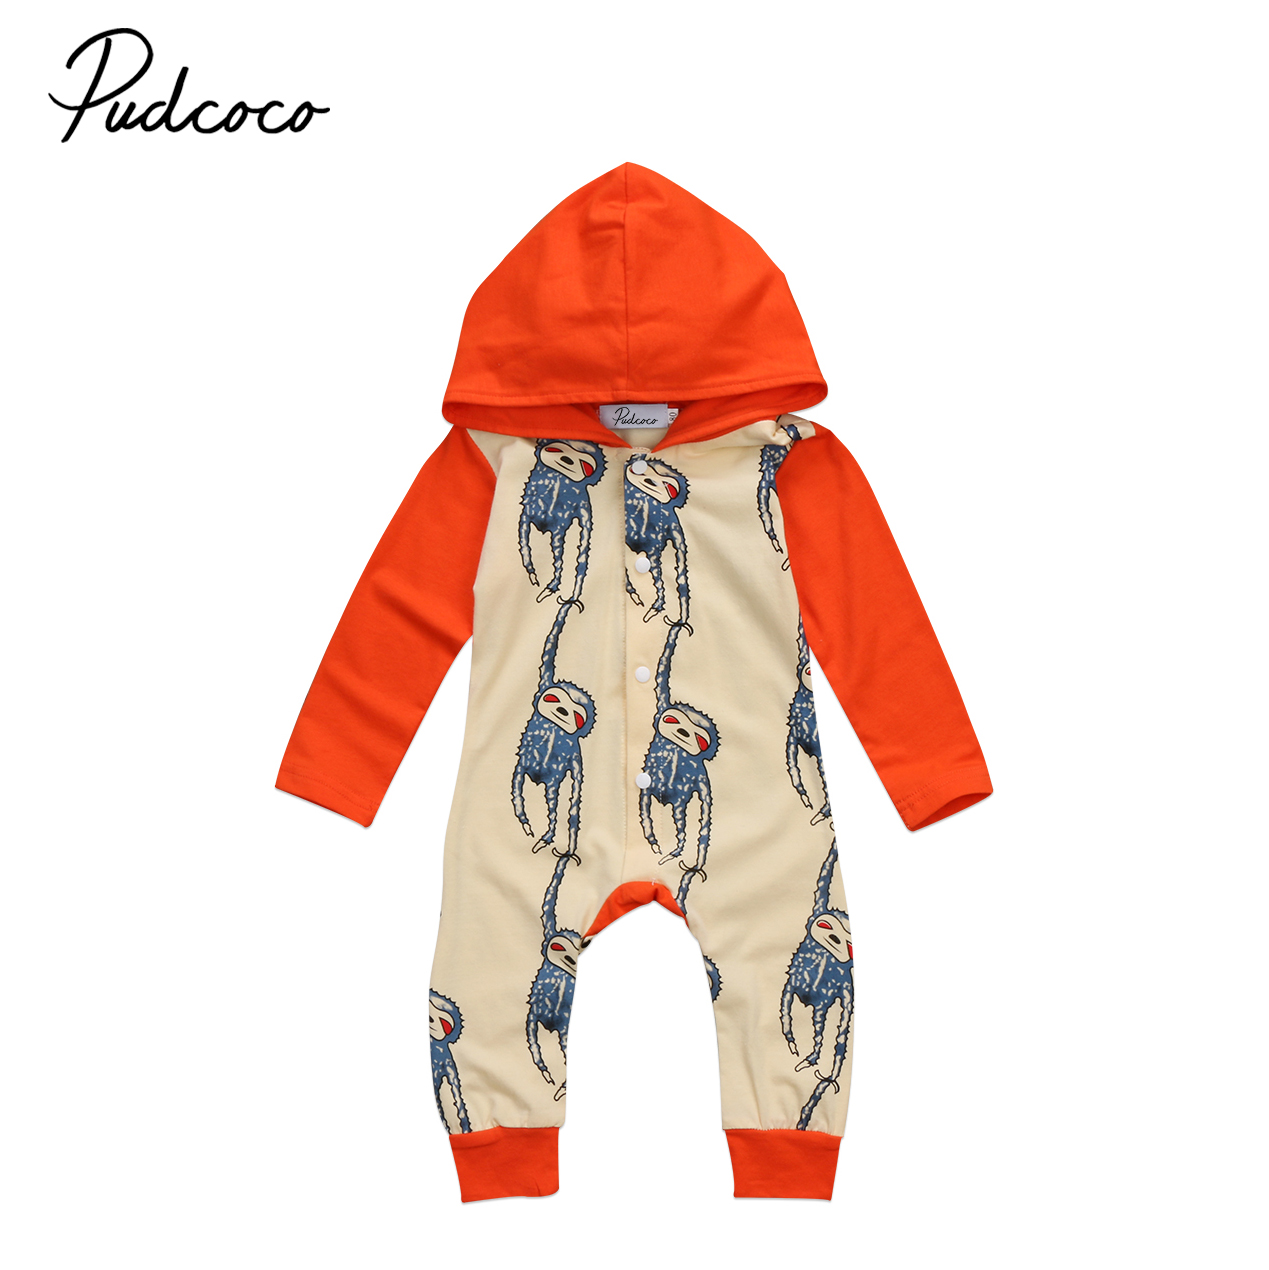 Baby Clothing Newborn Baby Boys Girls Sloth Novelty Long sleeve Romper Jumpsuit Autumn Winter Baby Clothes Outfits Unisex 0-2T